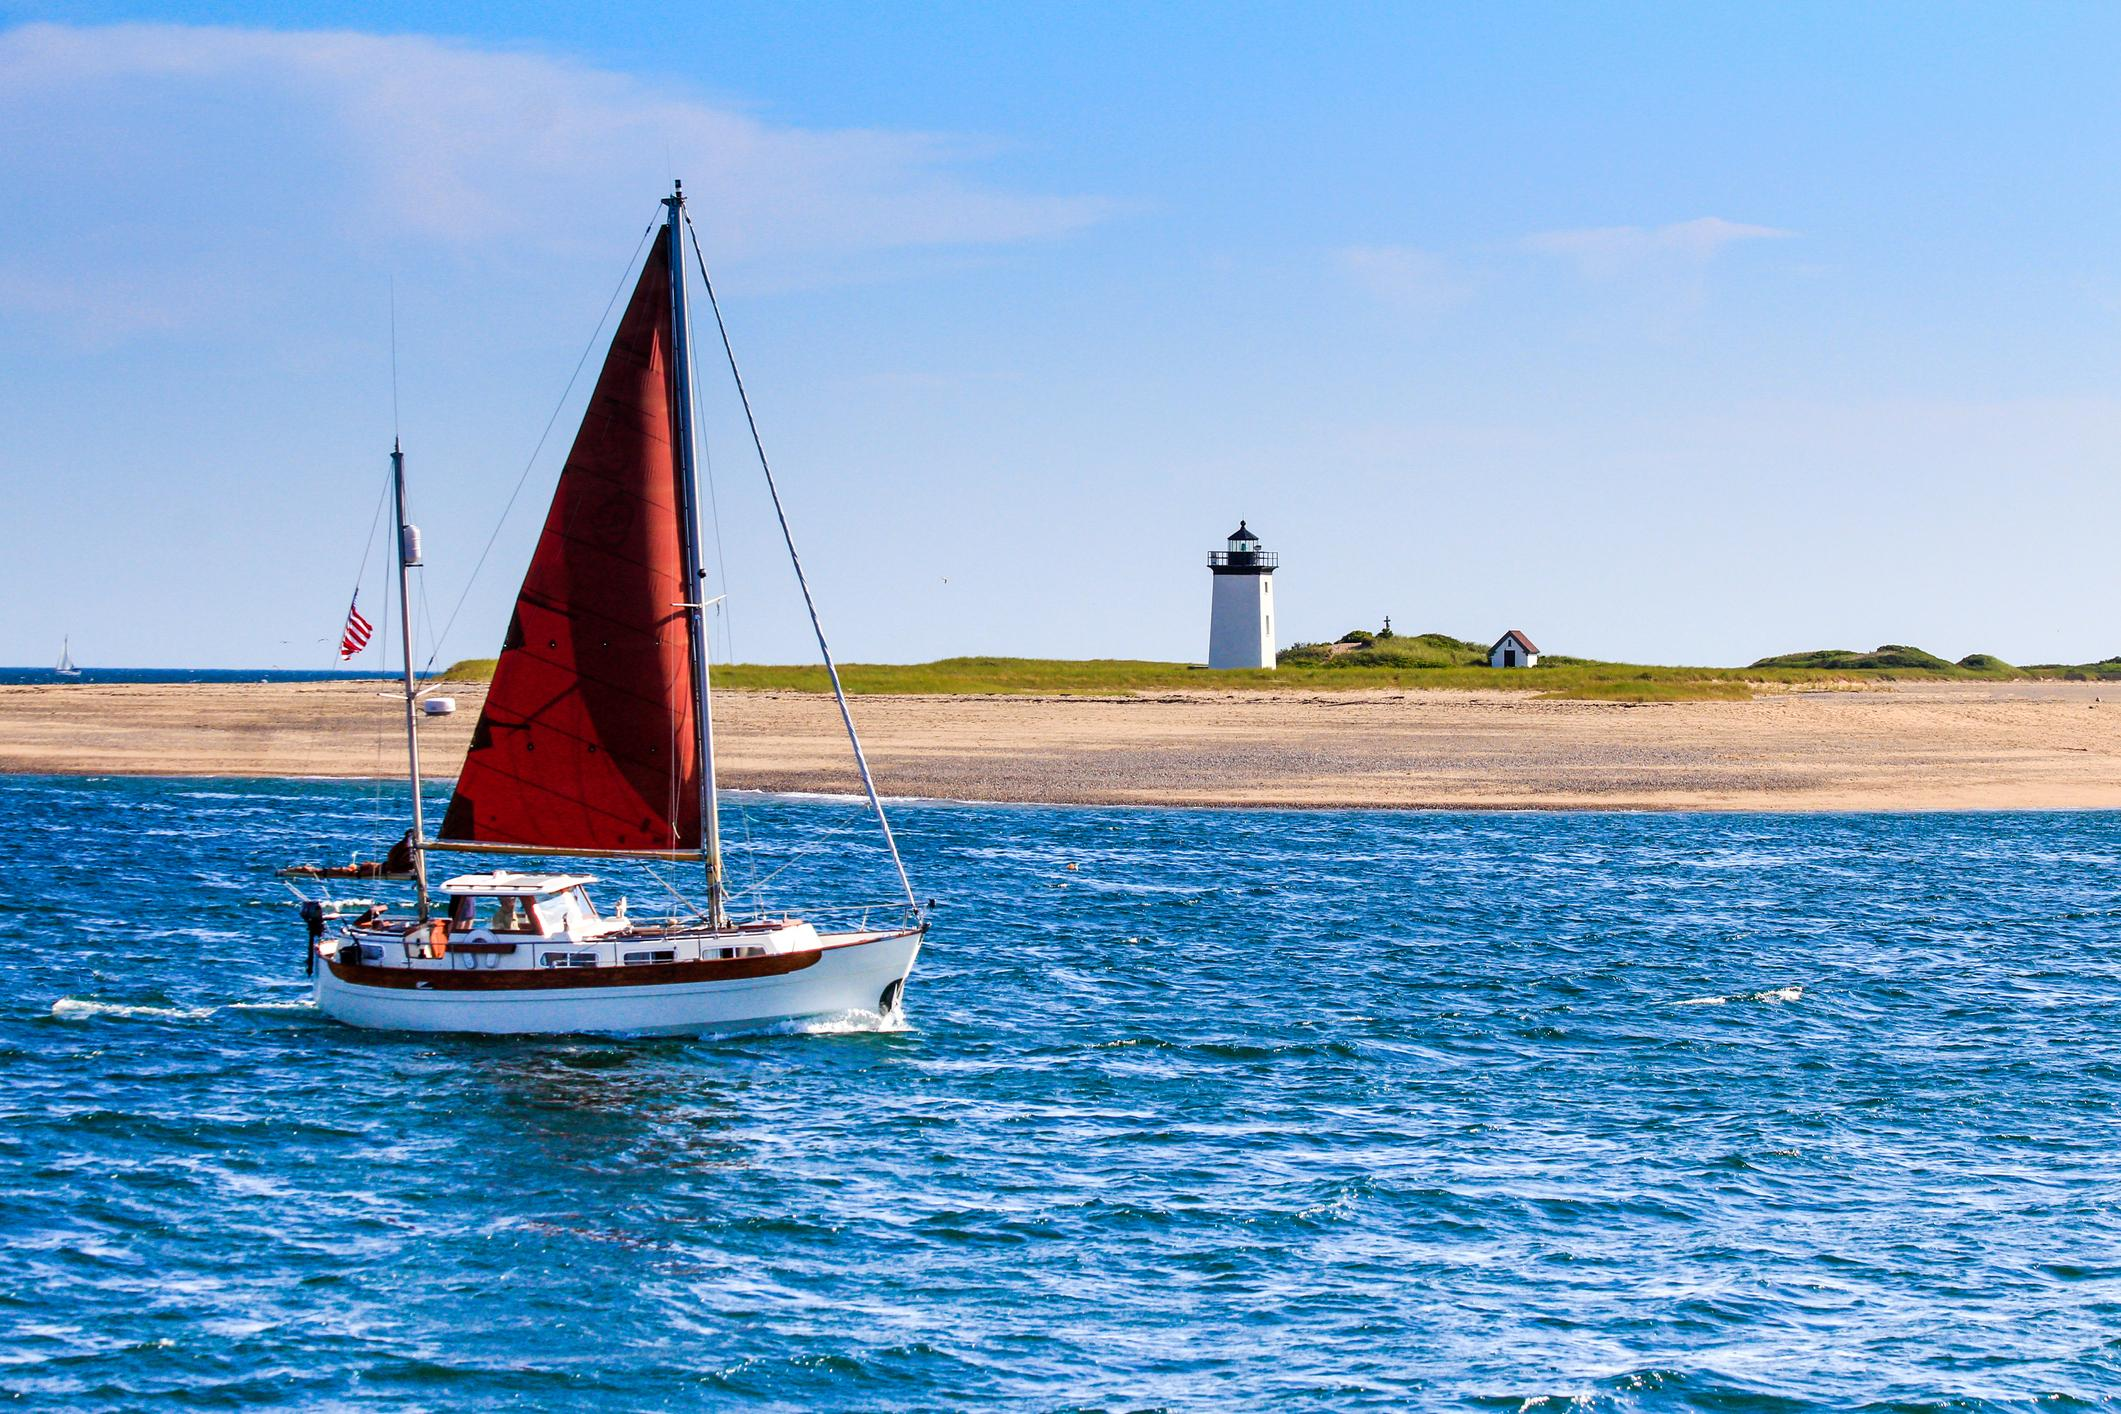 Whale Watch Dolphin Fleet is a Provincetown favorite for spectacular whale sightings.